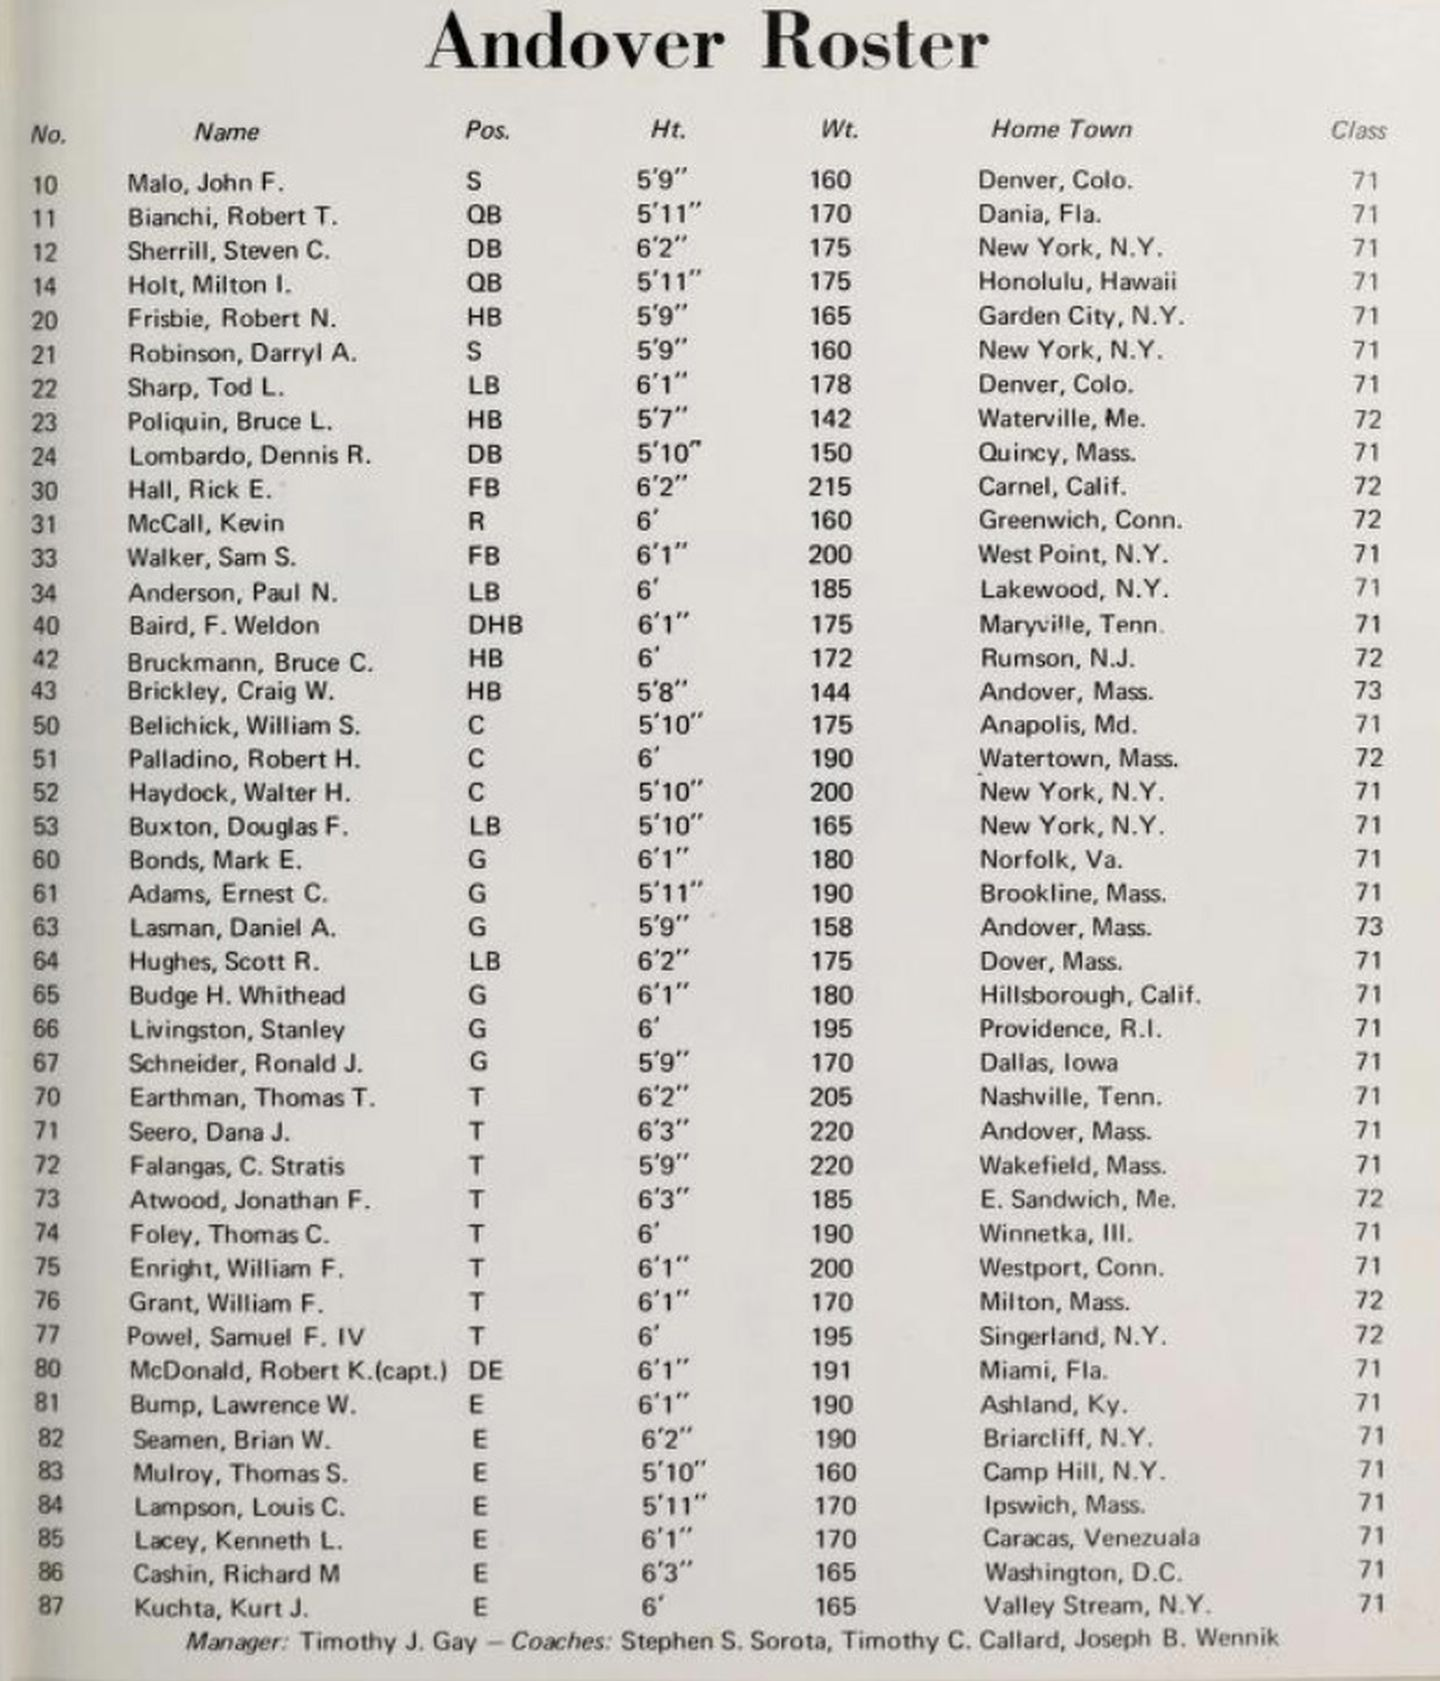 The 1970 Andover football roster, organized numerically.